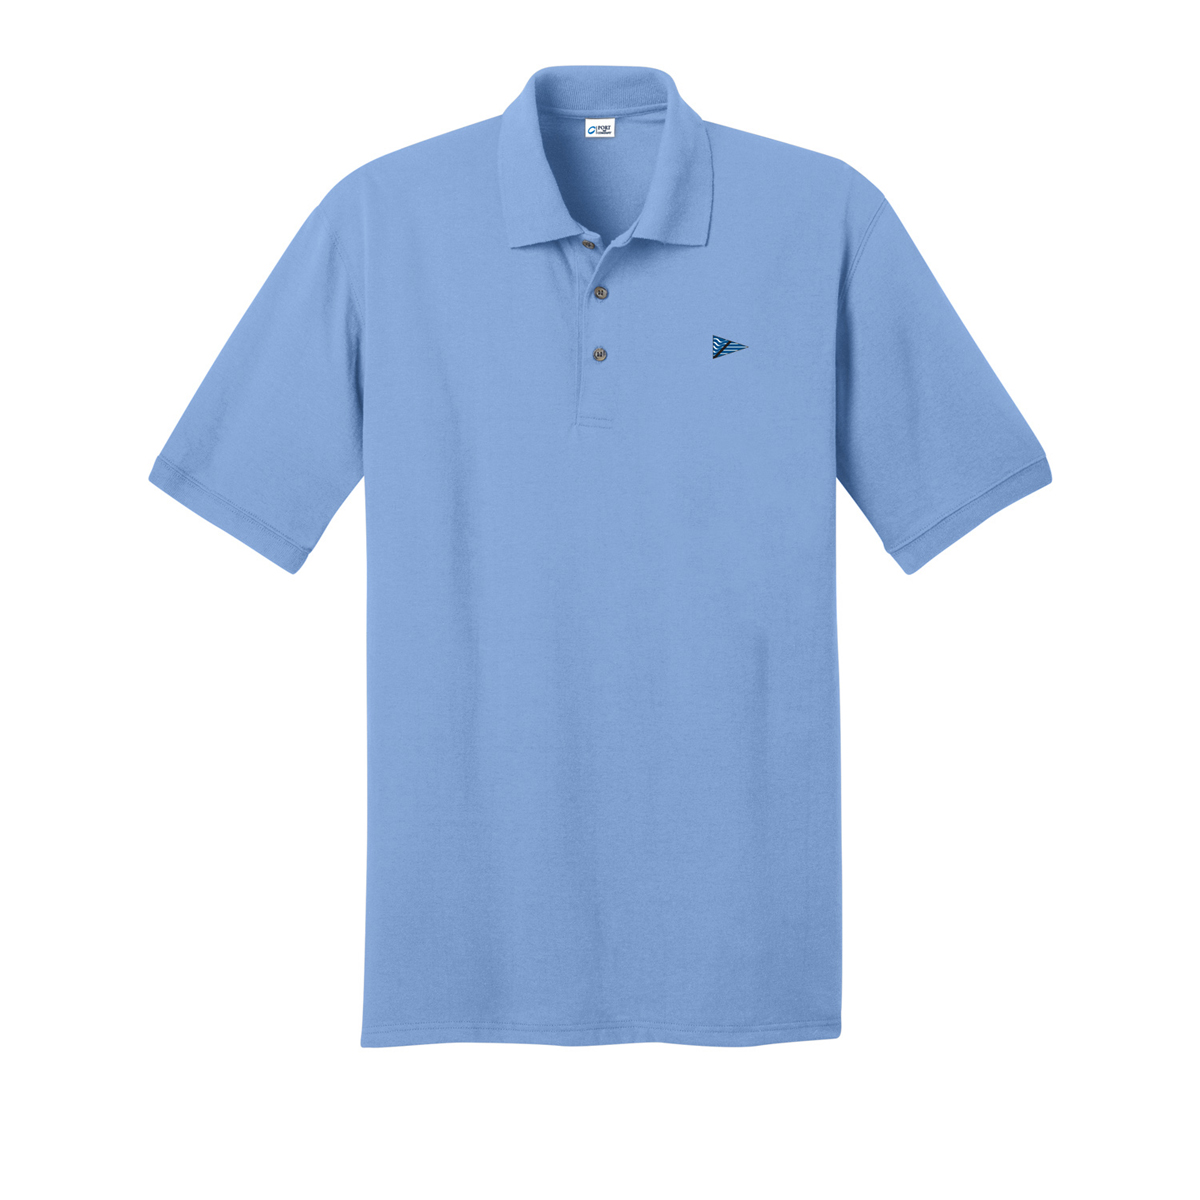 Breakwater Yacht Club-M's Cotton Polo